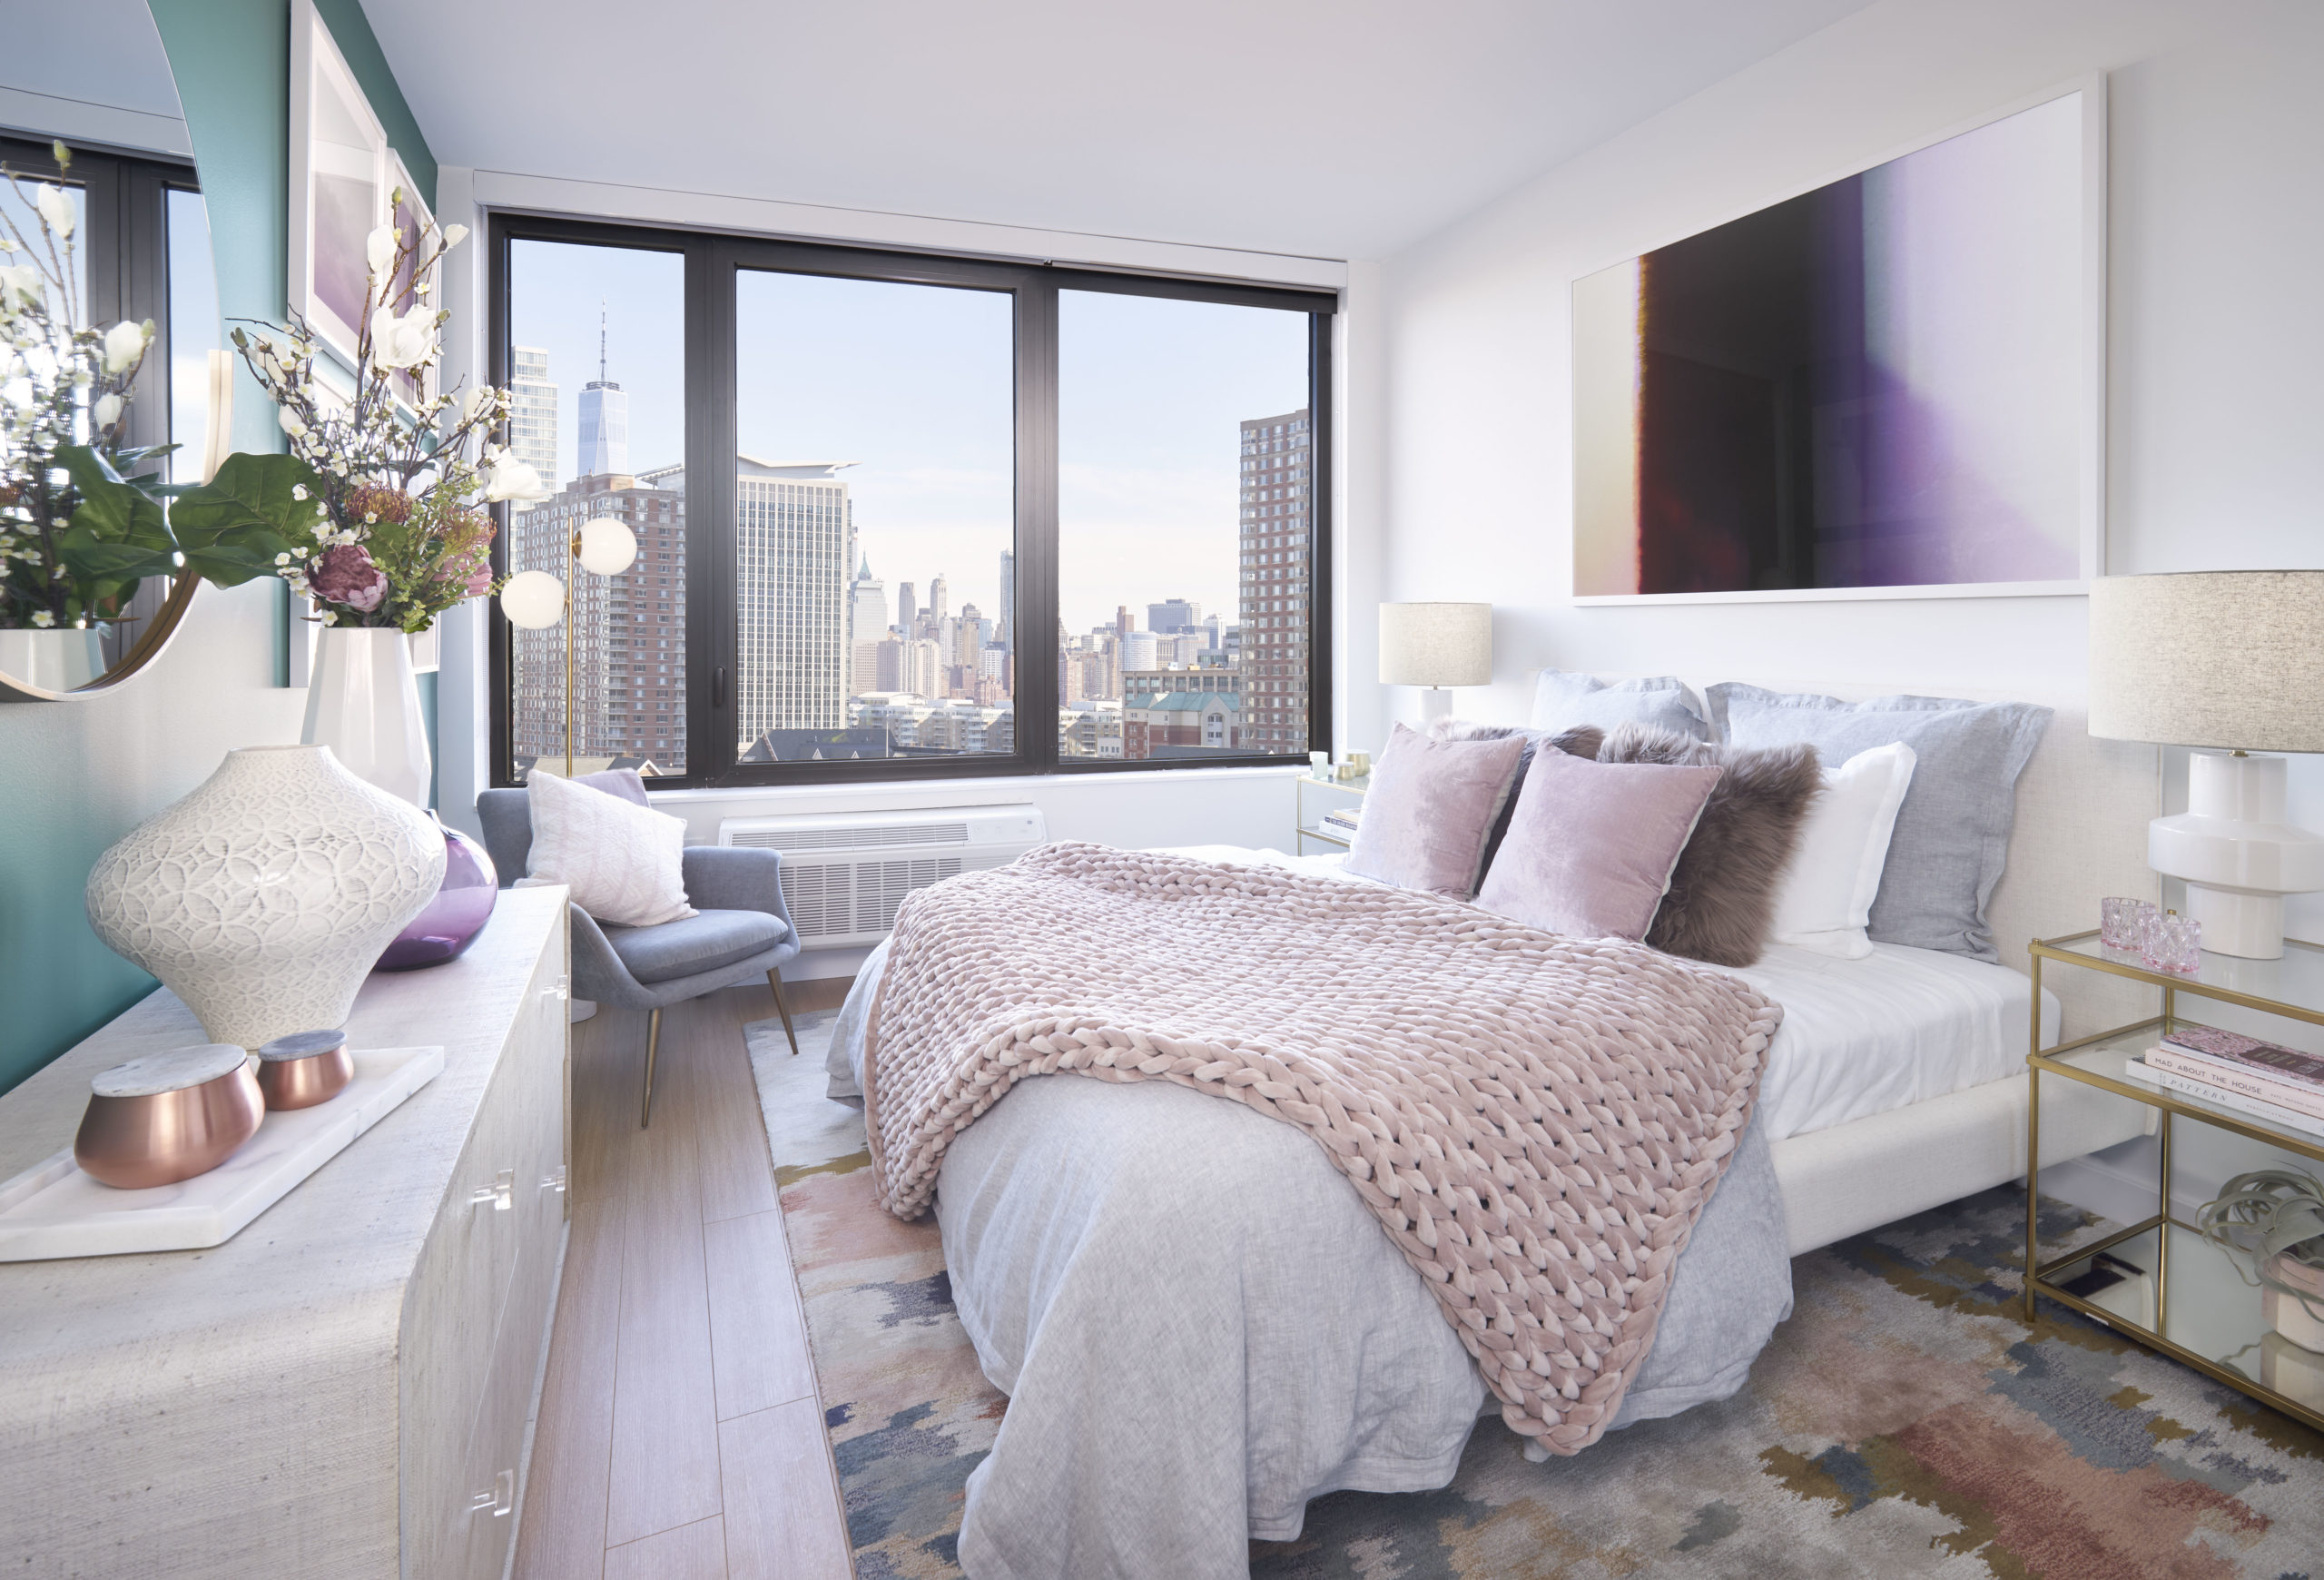 newport apartments in jersey city with wall to wall window and giant white bed